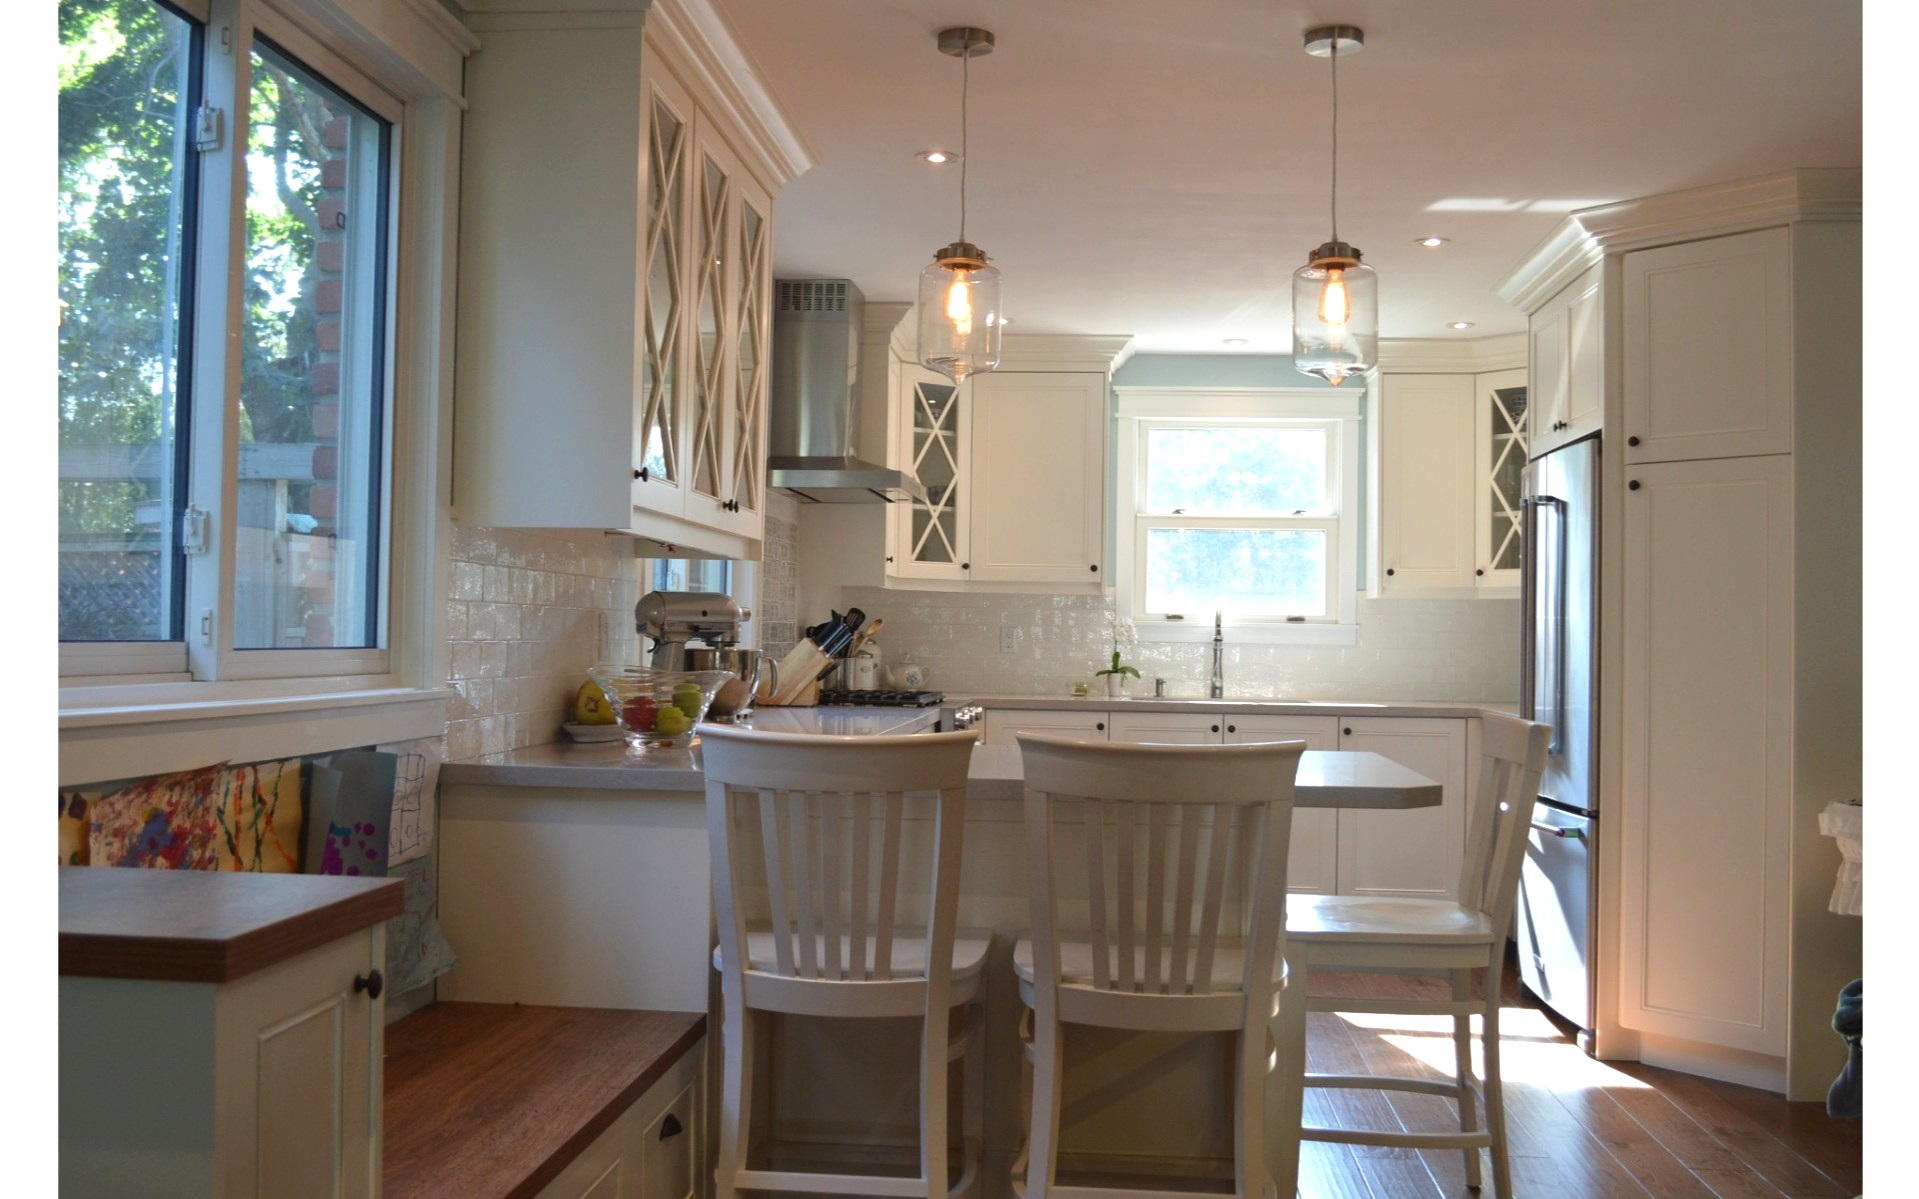 Cosy kitchen with hanging lights and white cabinets